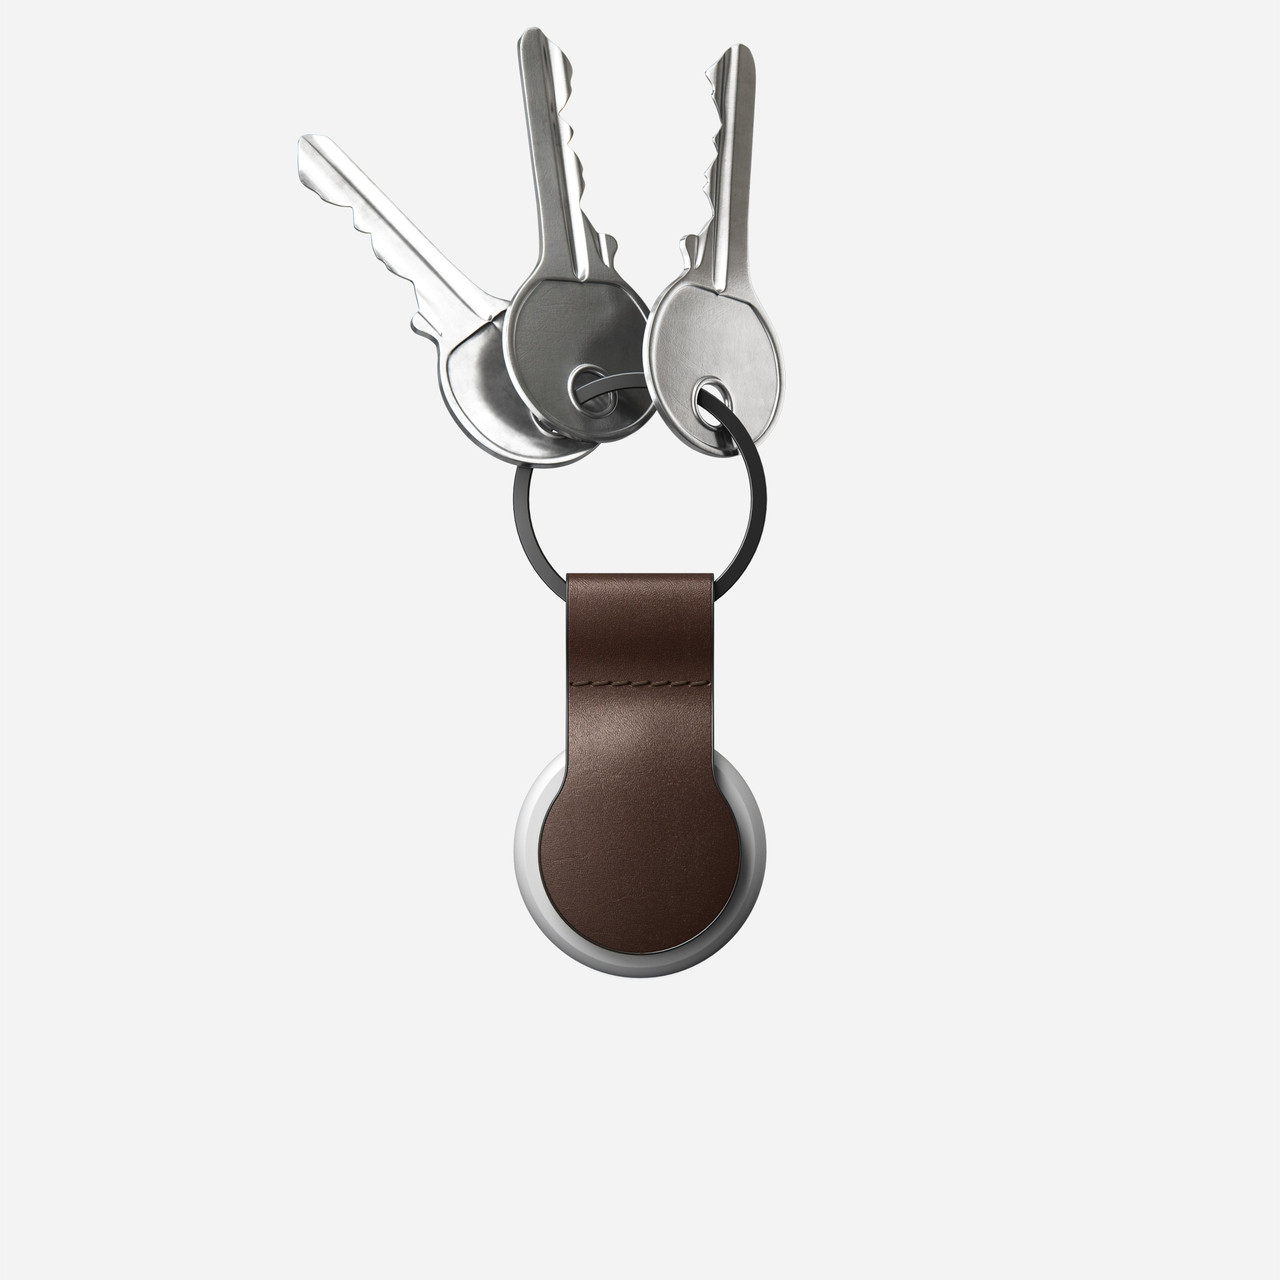 Nomad Keychain - for AirTag Leather Loop Horween Leather - Rustic Brown